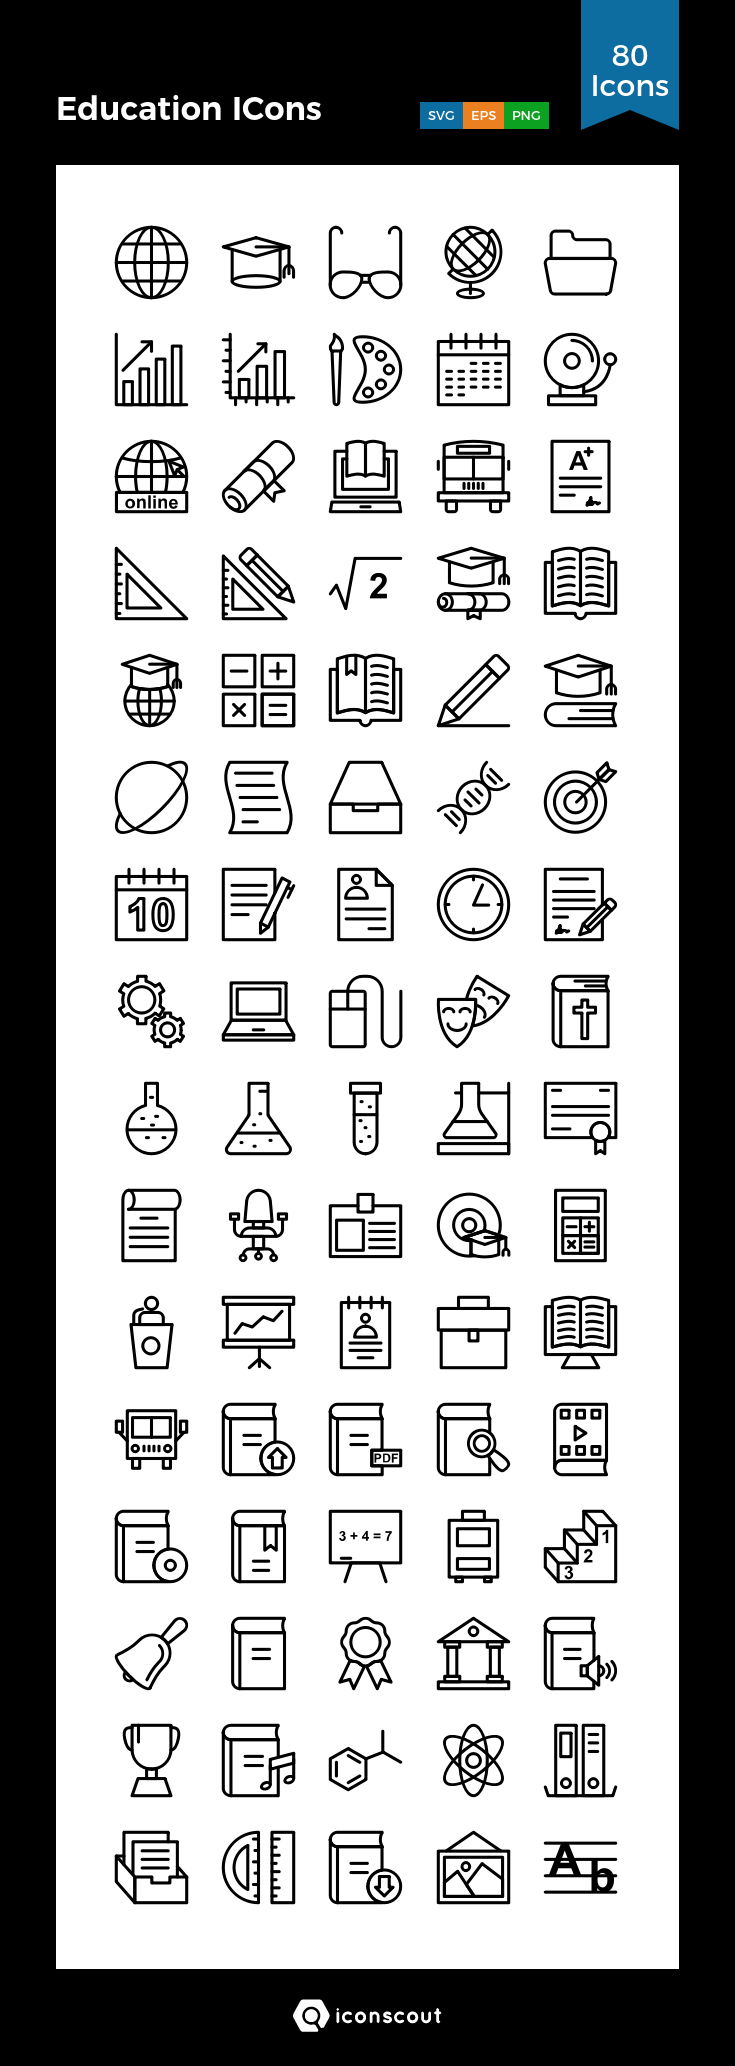 Download Education Icons Icon Pack Available In Svg Png Eps Ai Icon Fonts Education Icon Sketch Notes Work Icon